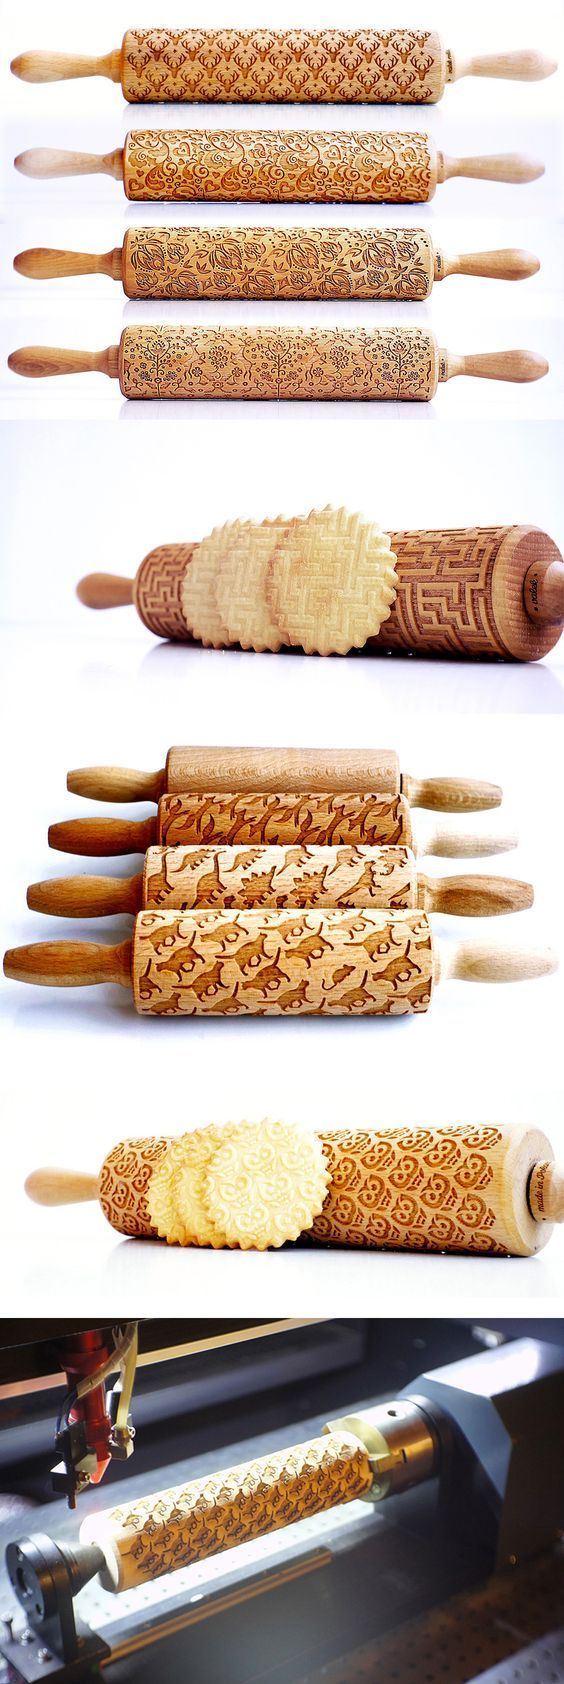 Perfect for Holiday Baking!!!   New Laser Engraved Rolling Pins Imprint Elaborate Designs on Baked Goods